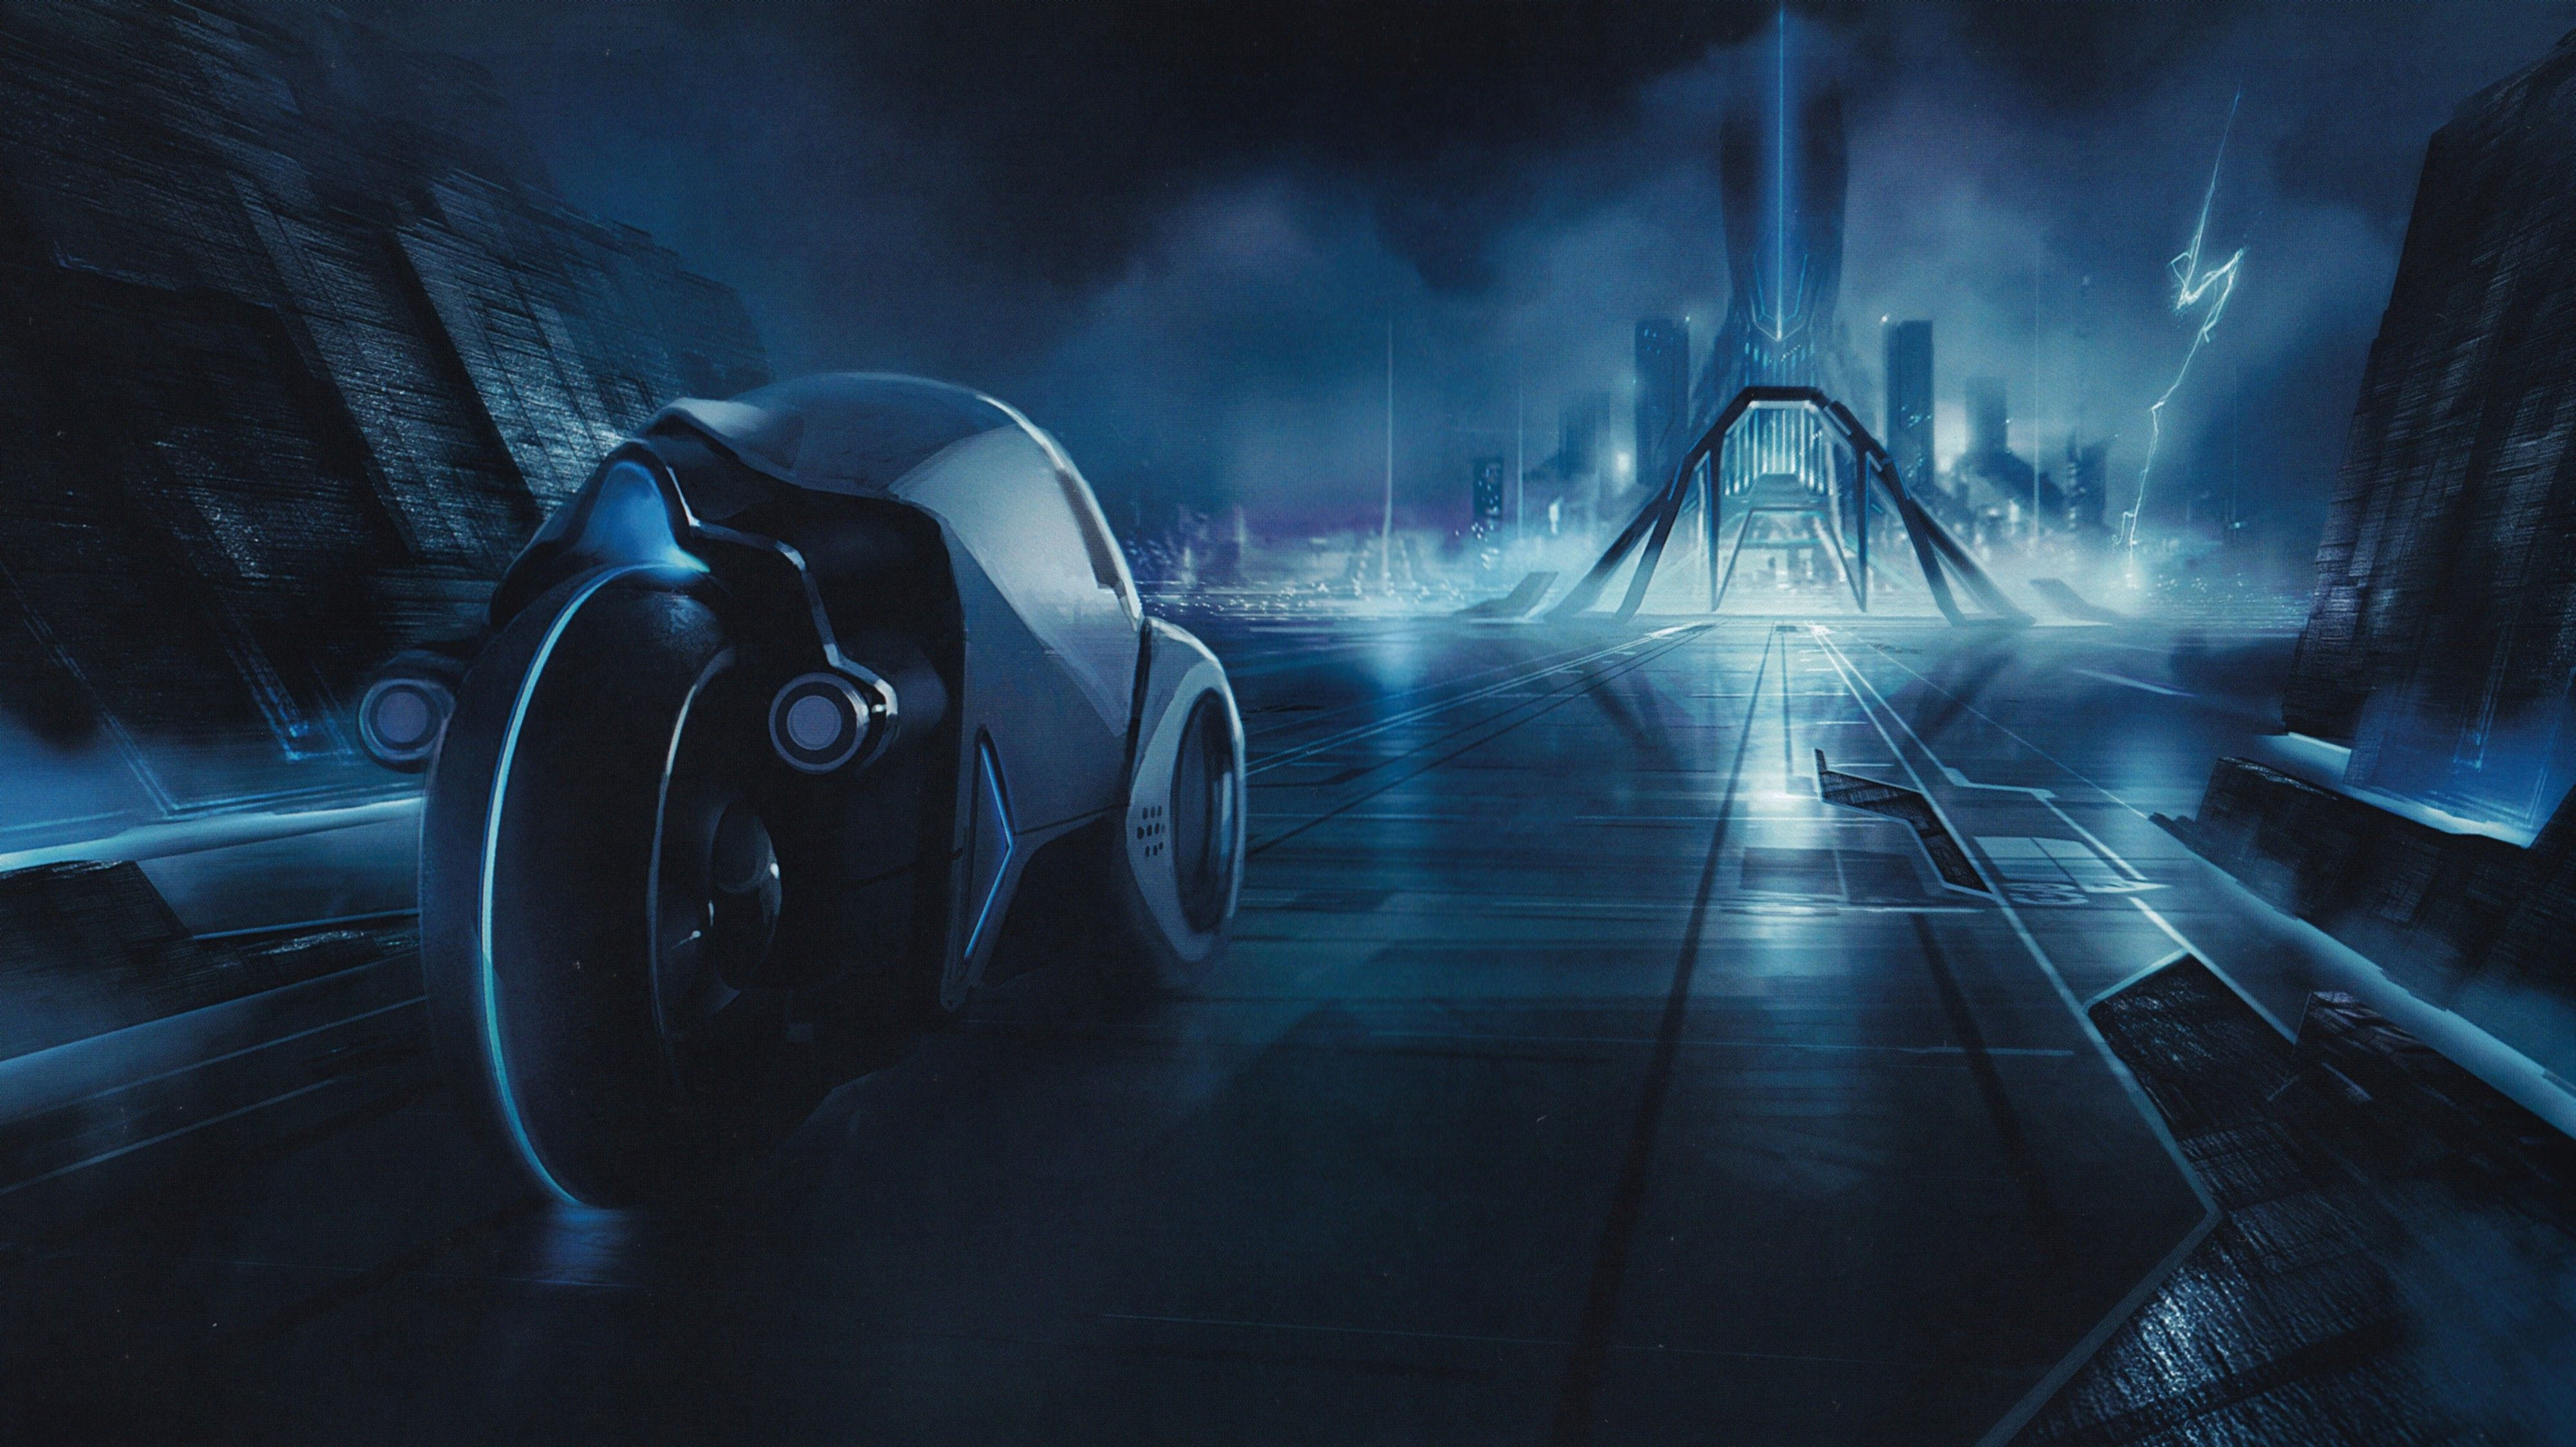 Pin By Zack Valentine On Space The Final Frontier 2 These Are The Voyages Of Fantasy Lovers Everywhere Again Tron Legacy Tron Tron Art